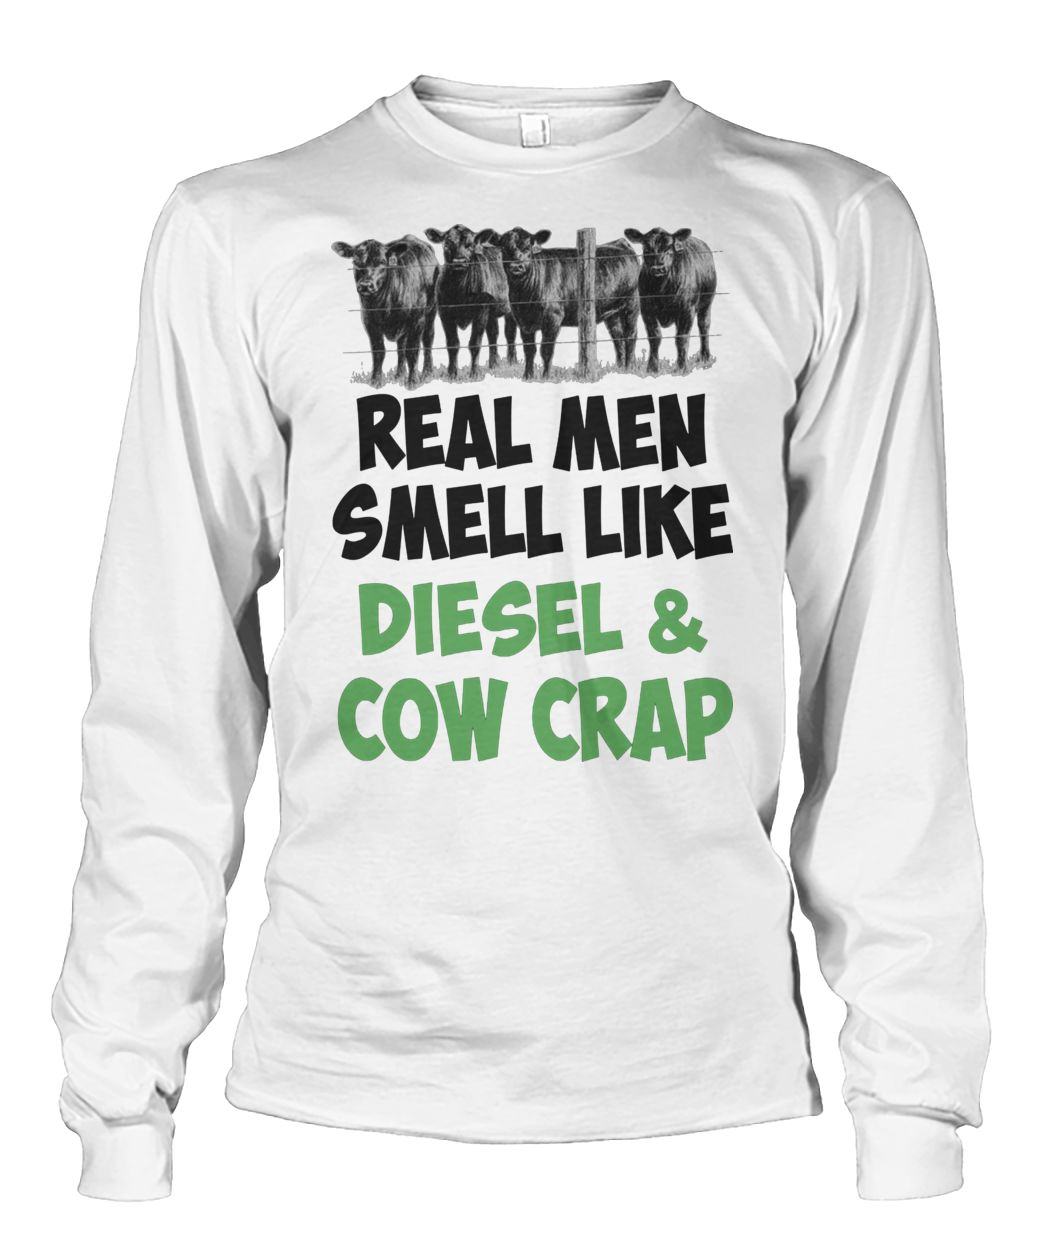 Famer real men smell like diesel and cow crap unisex long sleeve